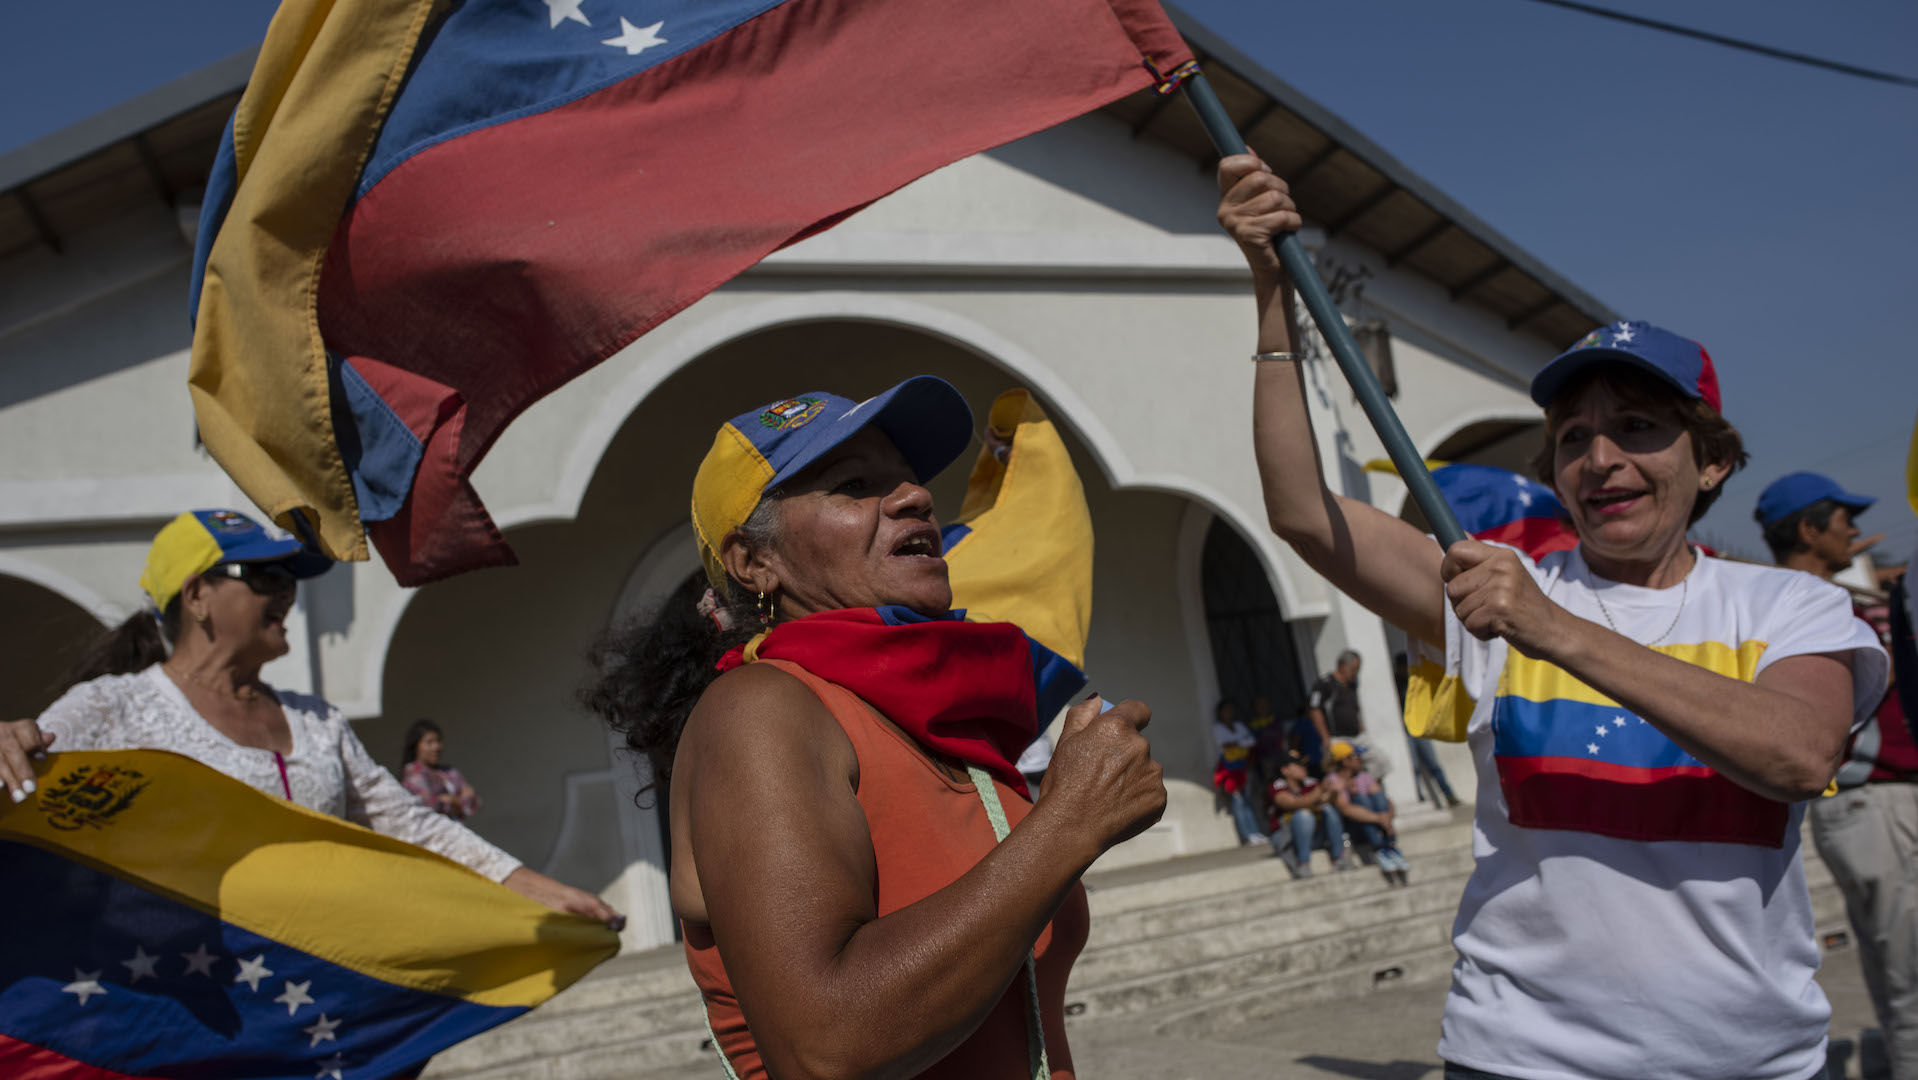 How the crisis in Venezuela is unfolding, in images